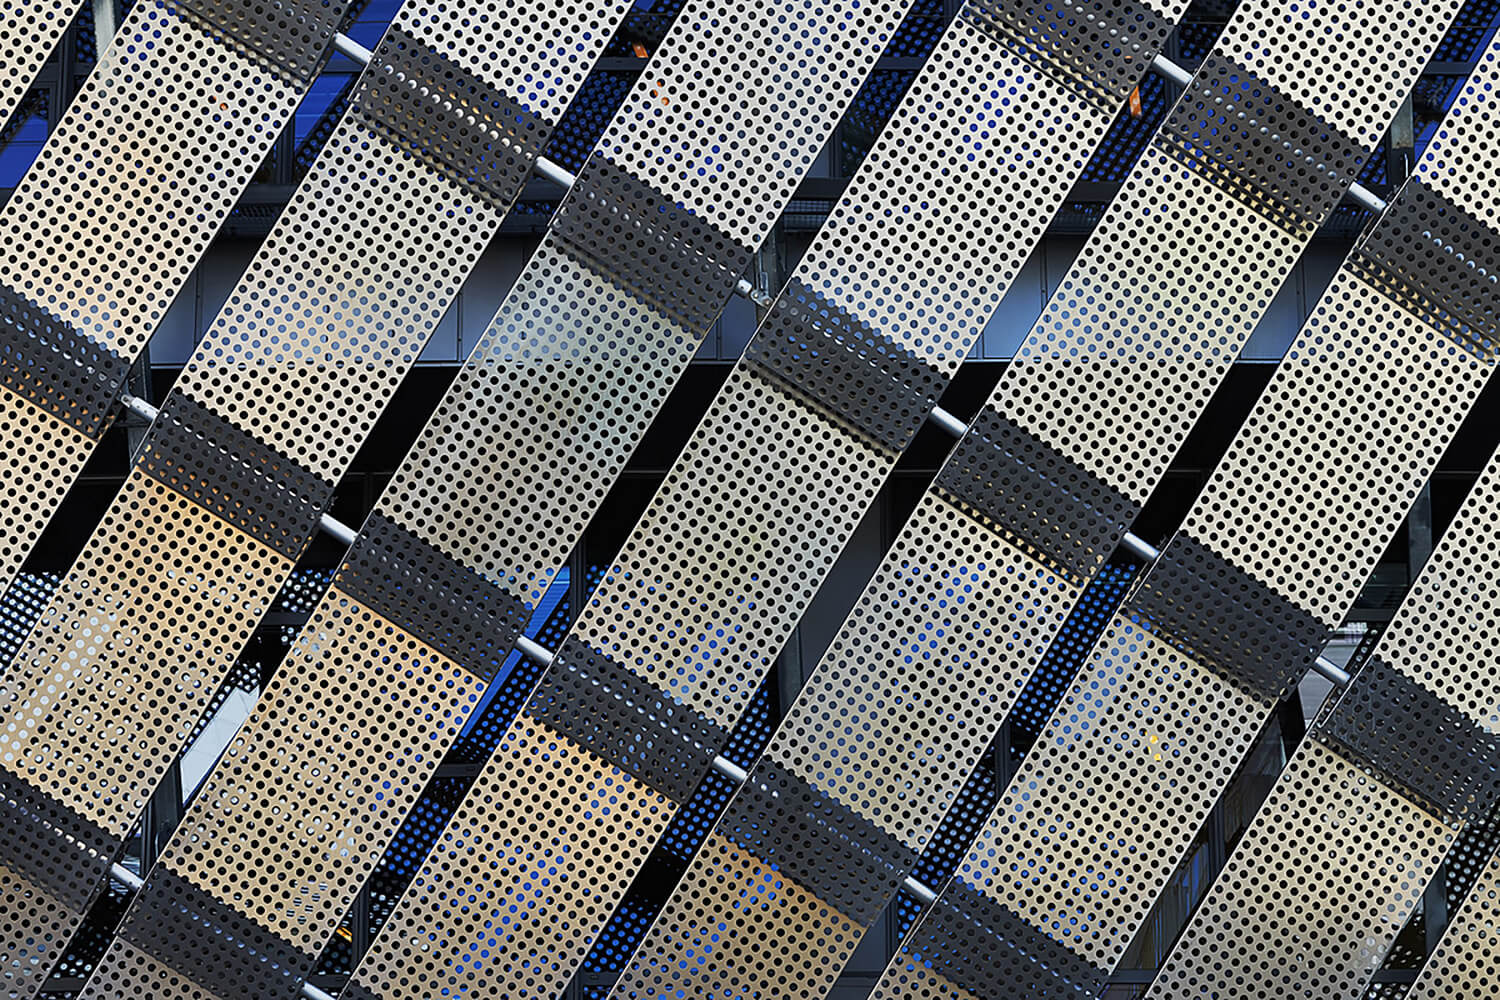 the perforated metal plates